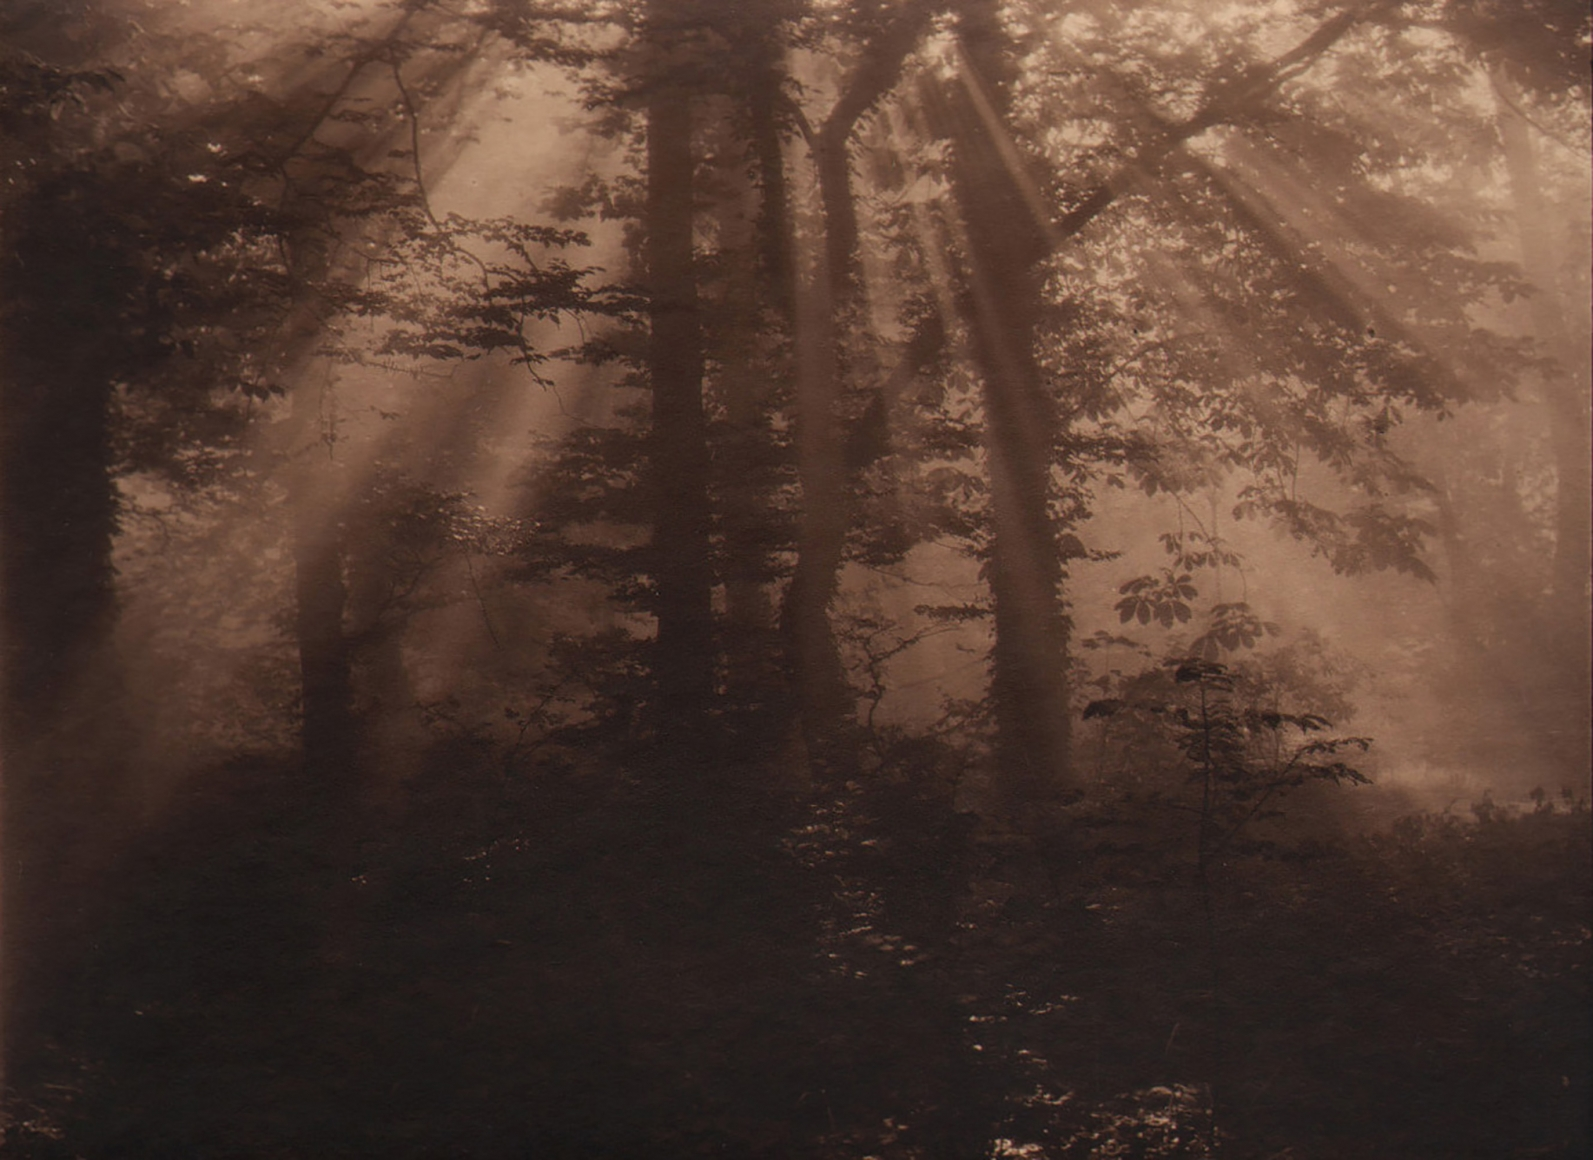 29. Léonard Misonne, Untitled, c. 1930. Wooden scene with sun streaking through from above. Deep sepia-toned print.